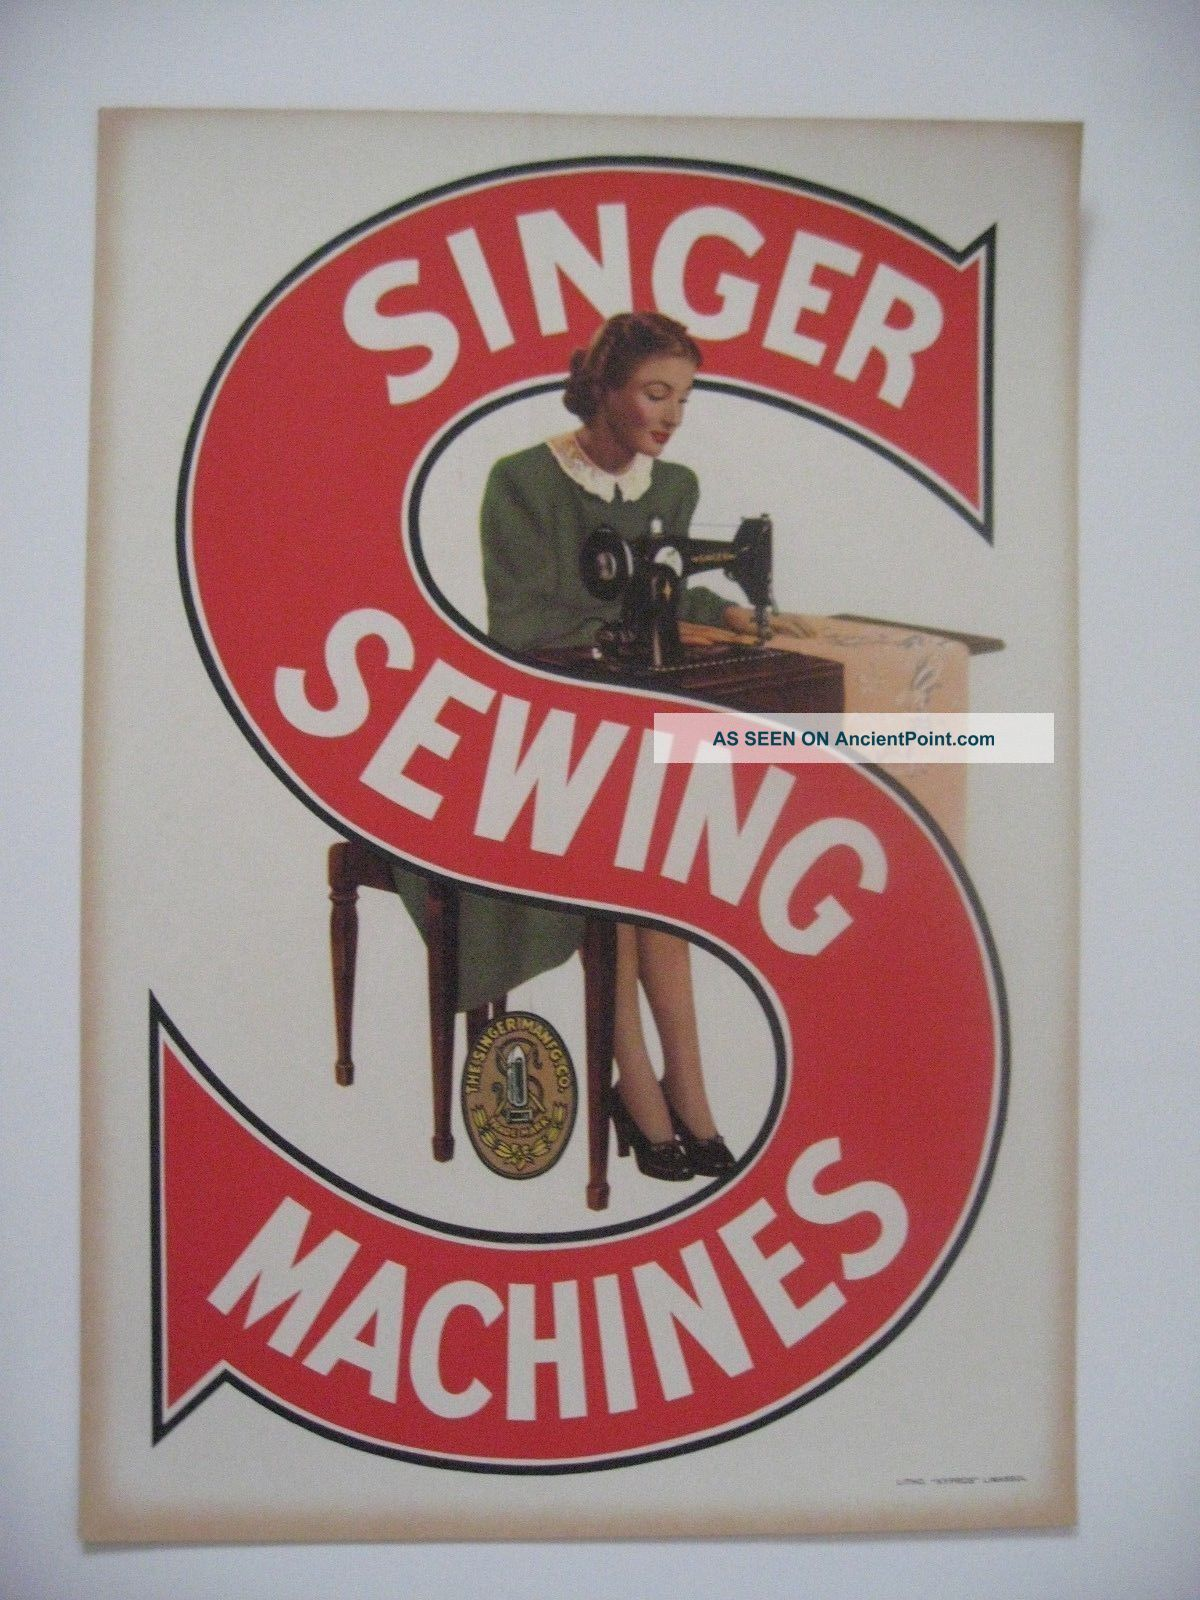 Singer Sewing Machine Vintage Carton Advertising 1960s ' Other Antique Sewing photo